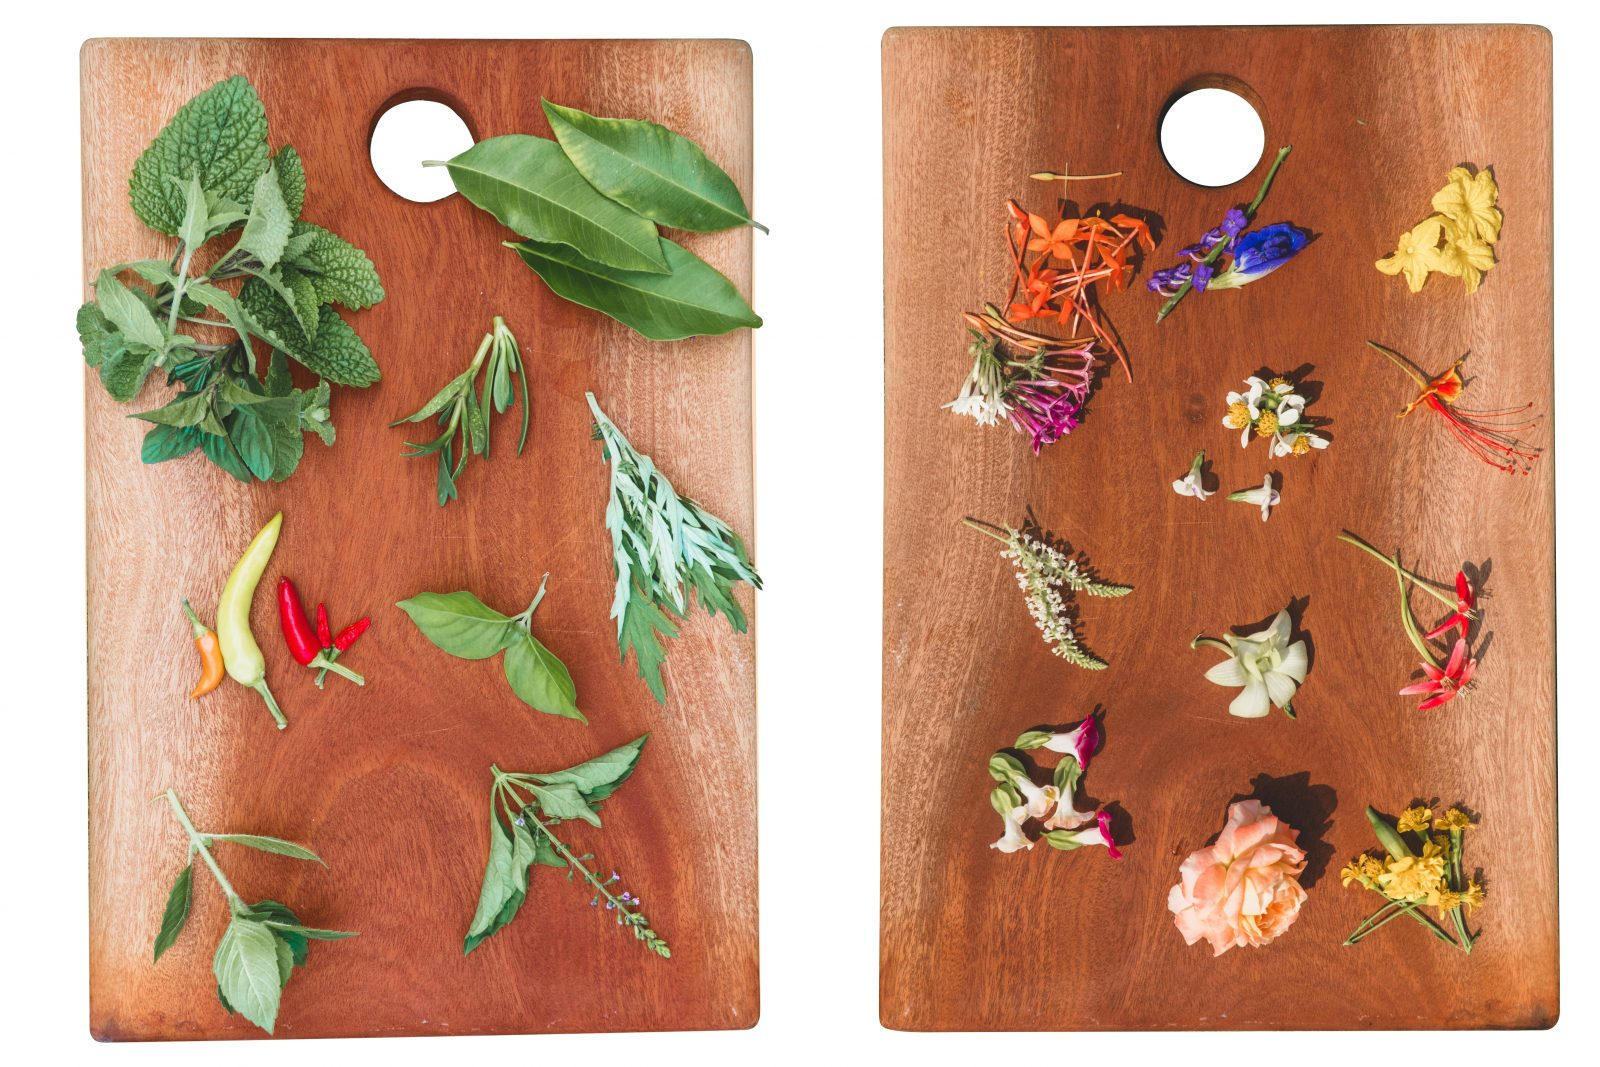 Some of the weird and wonderful produce available, including microherbs and edible flowers